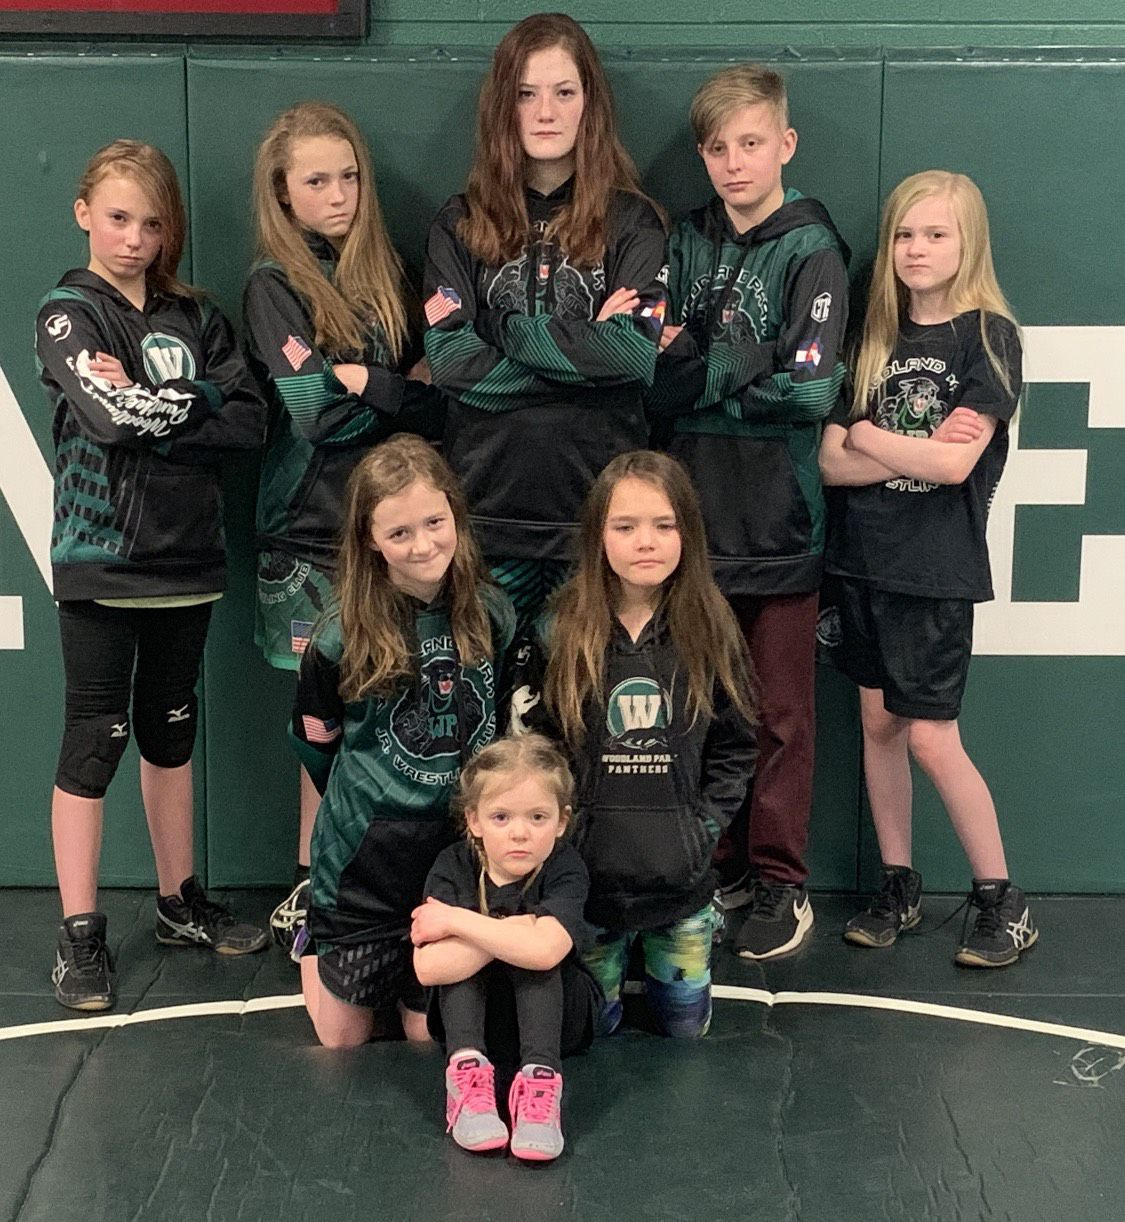 Female members of the Woodland Park Wrestling Club team